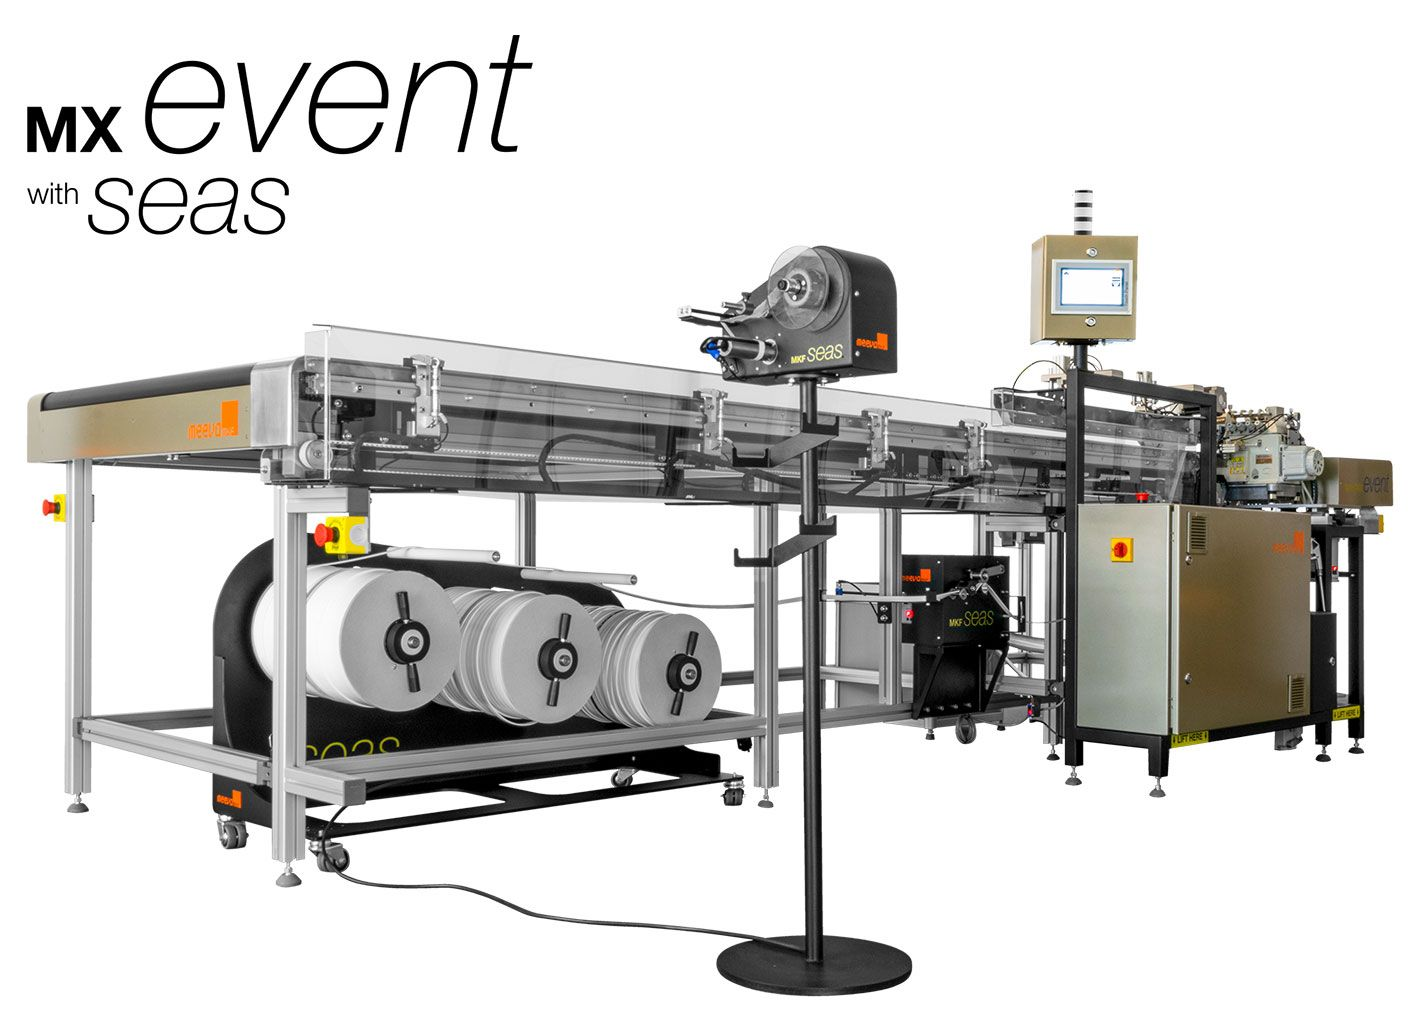 Automatic SEG Sewing - MX Event with SEAS